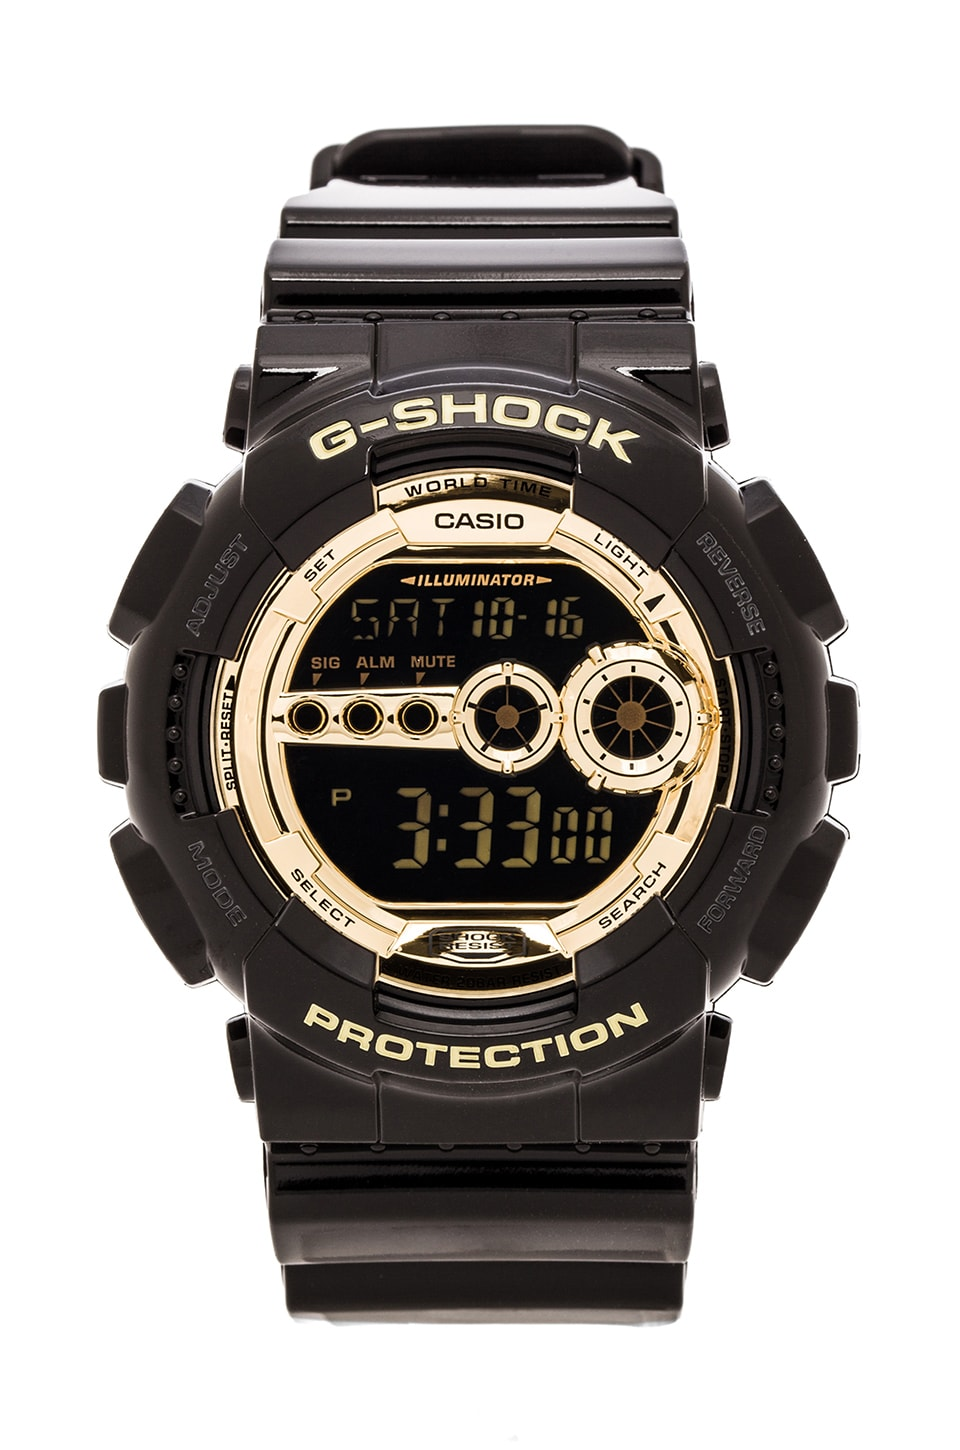 G-Shock GD-100 Black and Gold in Black